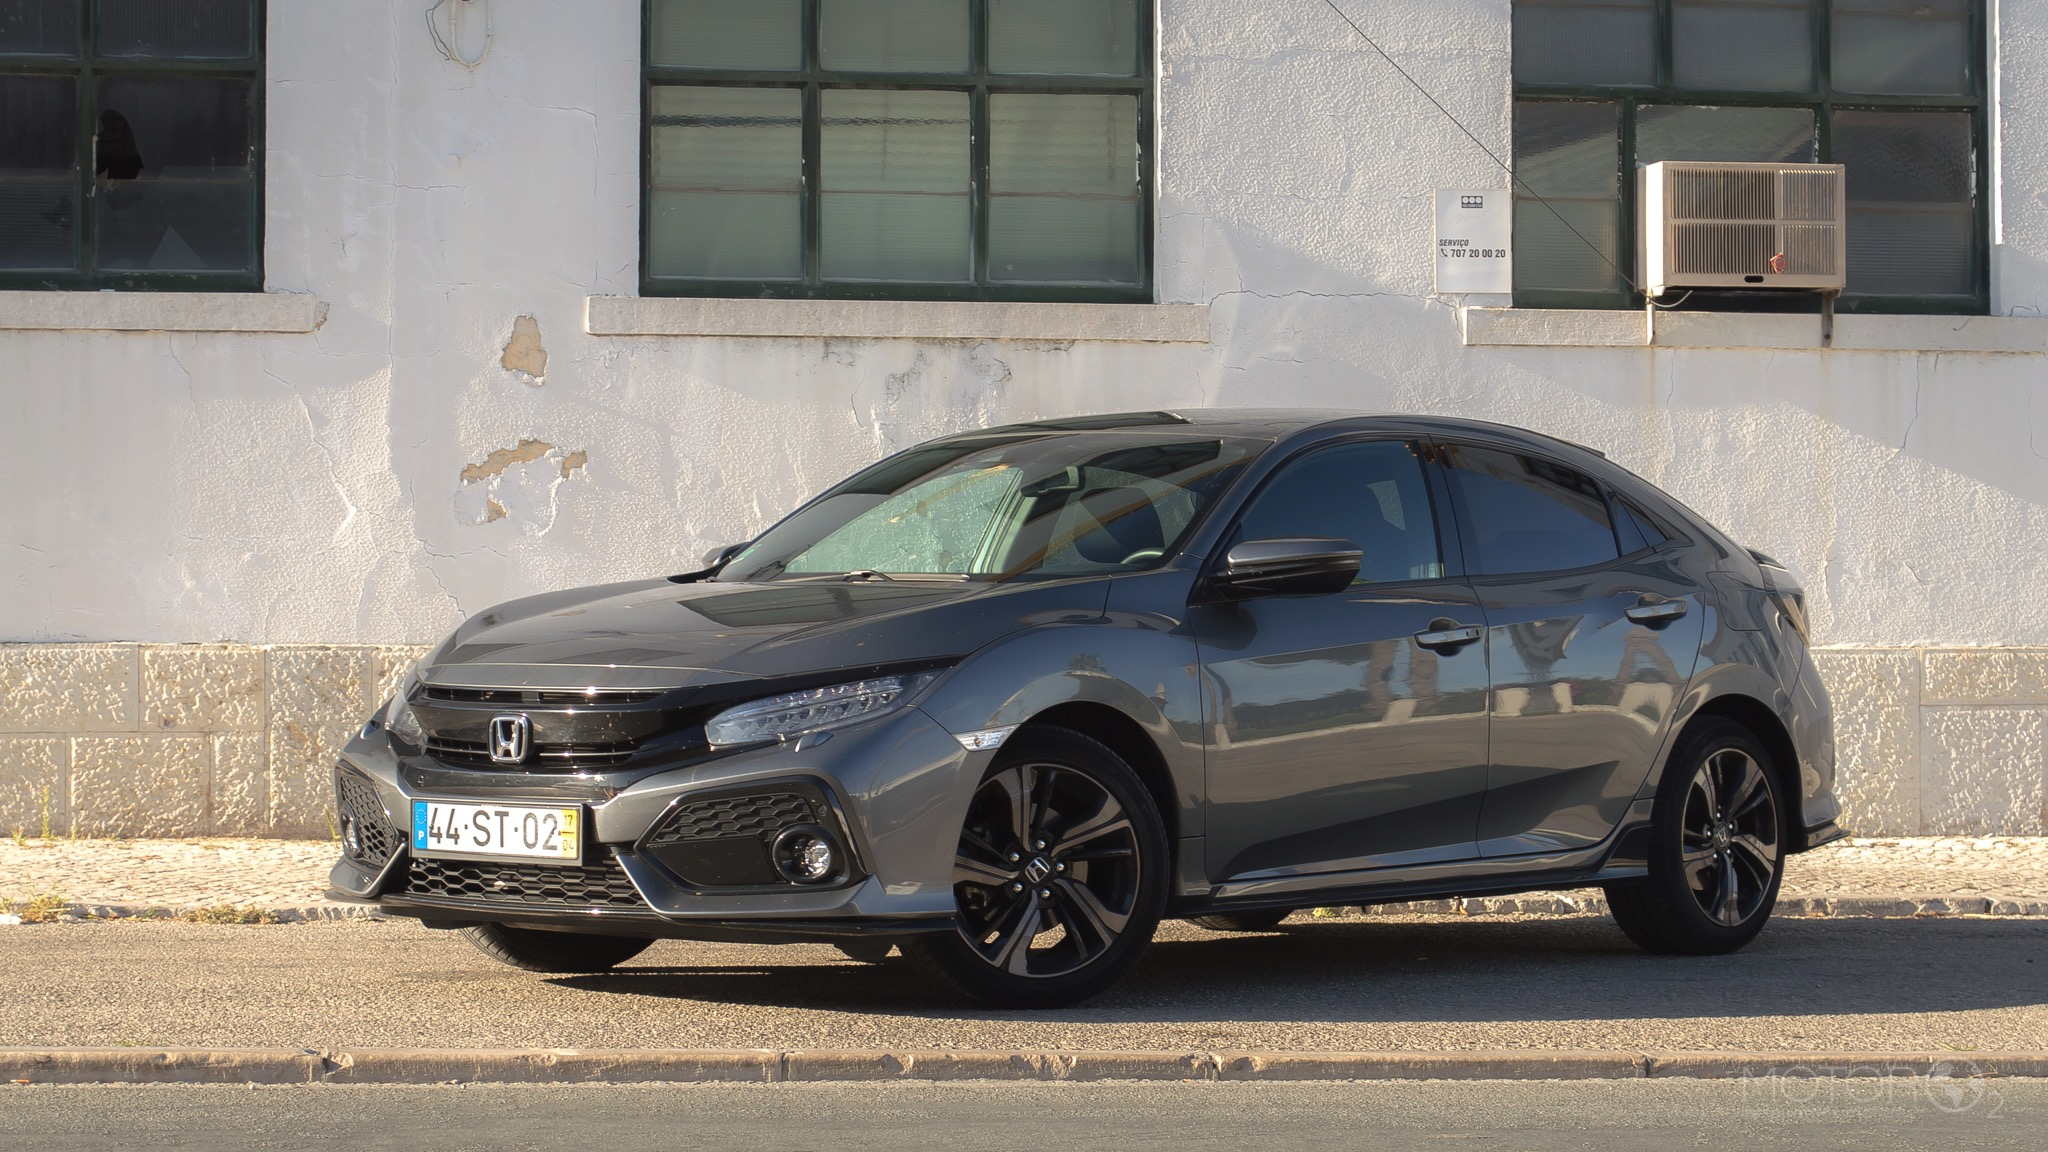 Honda Civic 1.5 i-VTEC Turbo Sport Plus